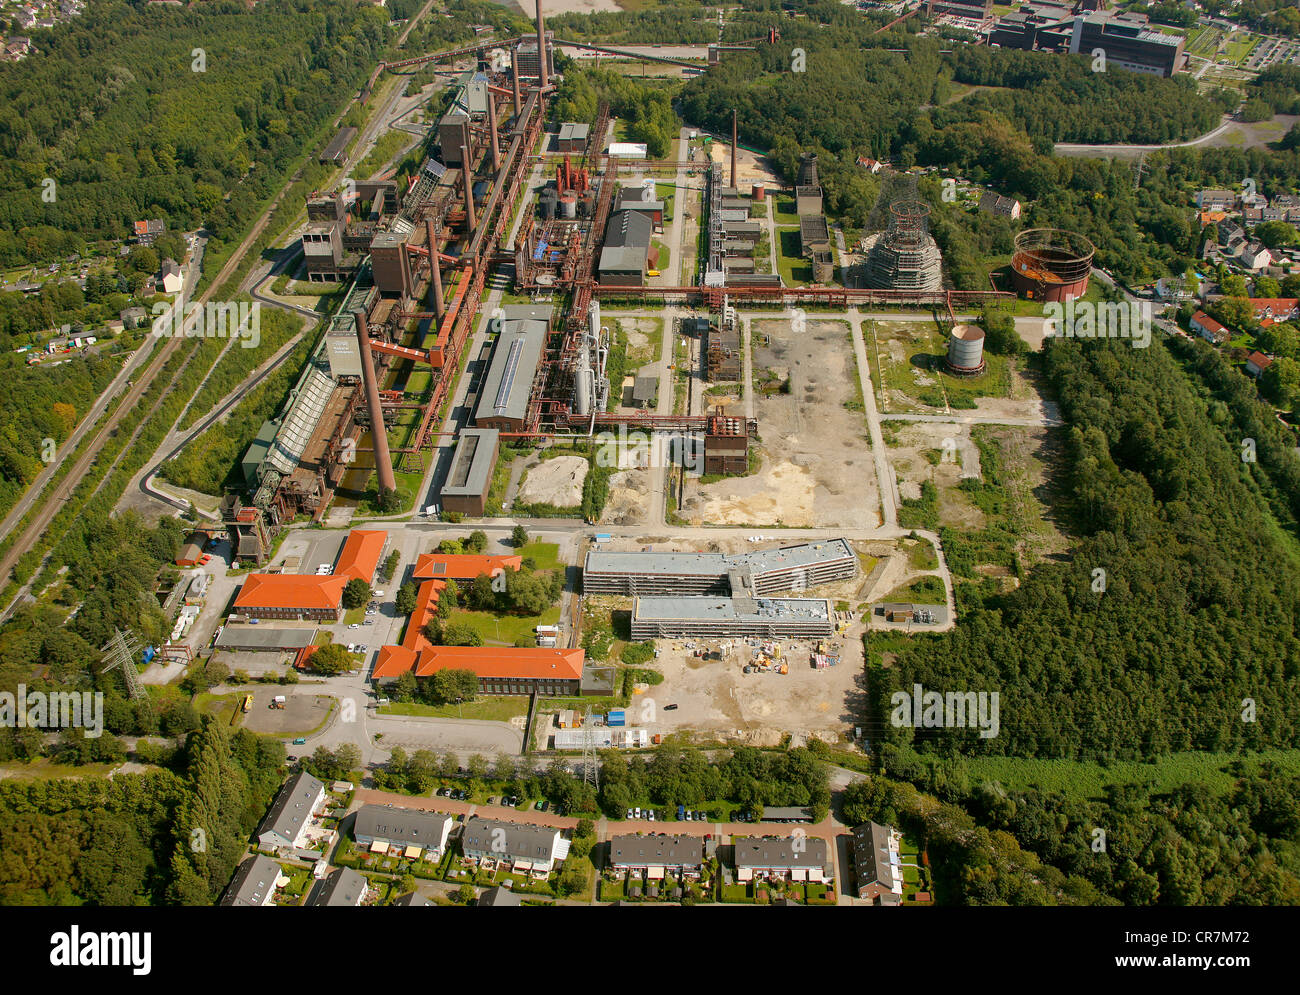 Aerial view, RAG Montan Immobilien, Zollverein, Essen, Ruhr Area, North Rhine-Westphalia, Germany, Europe - Stock Image